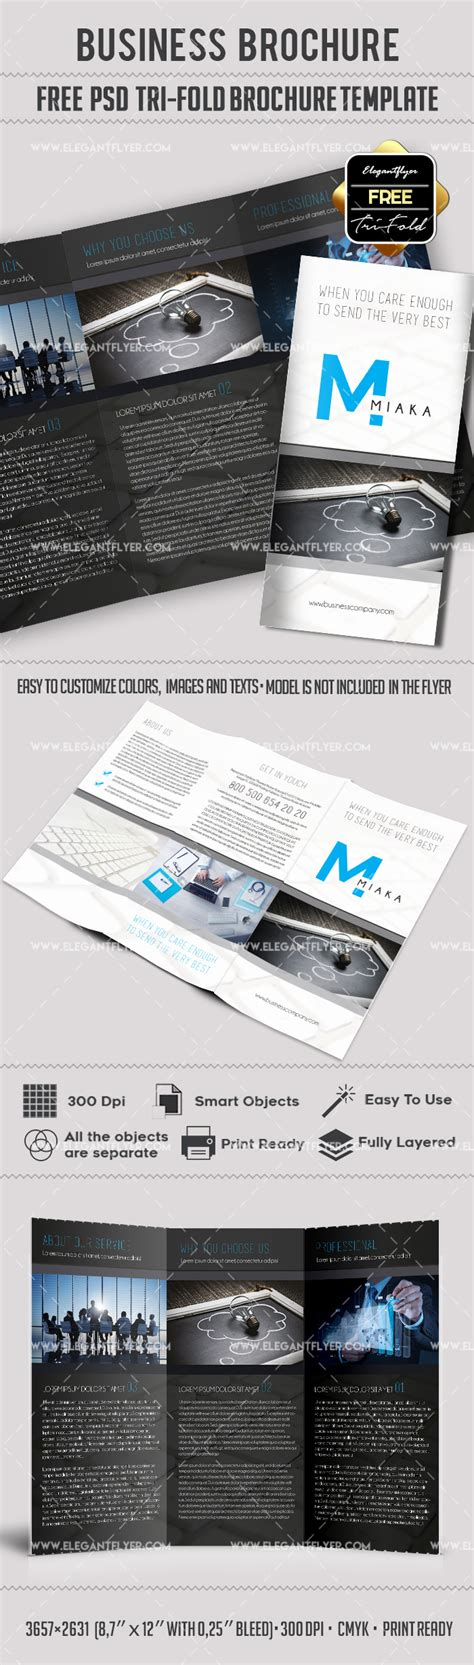 Tri Fold Brochure Templates Free By Elegantflyer Tri Fold Brochure Templates Free By Elegantflyer